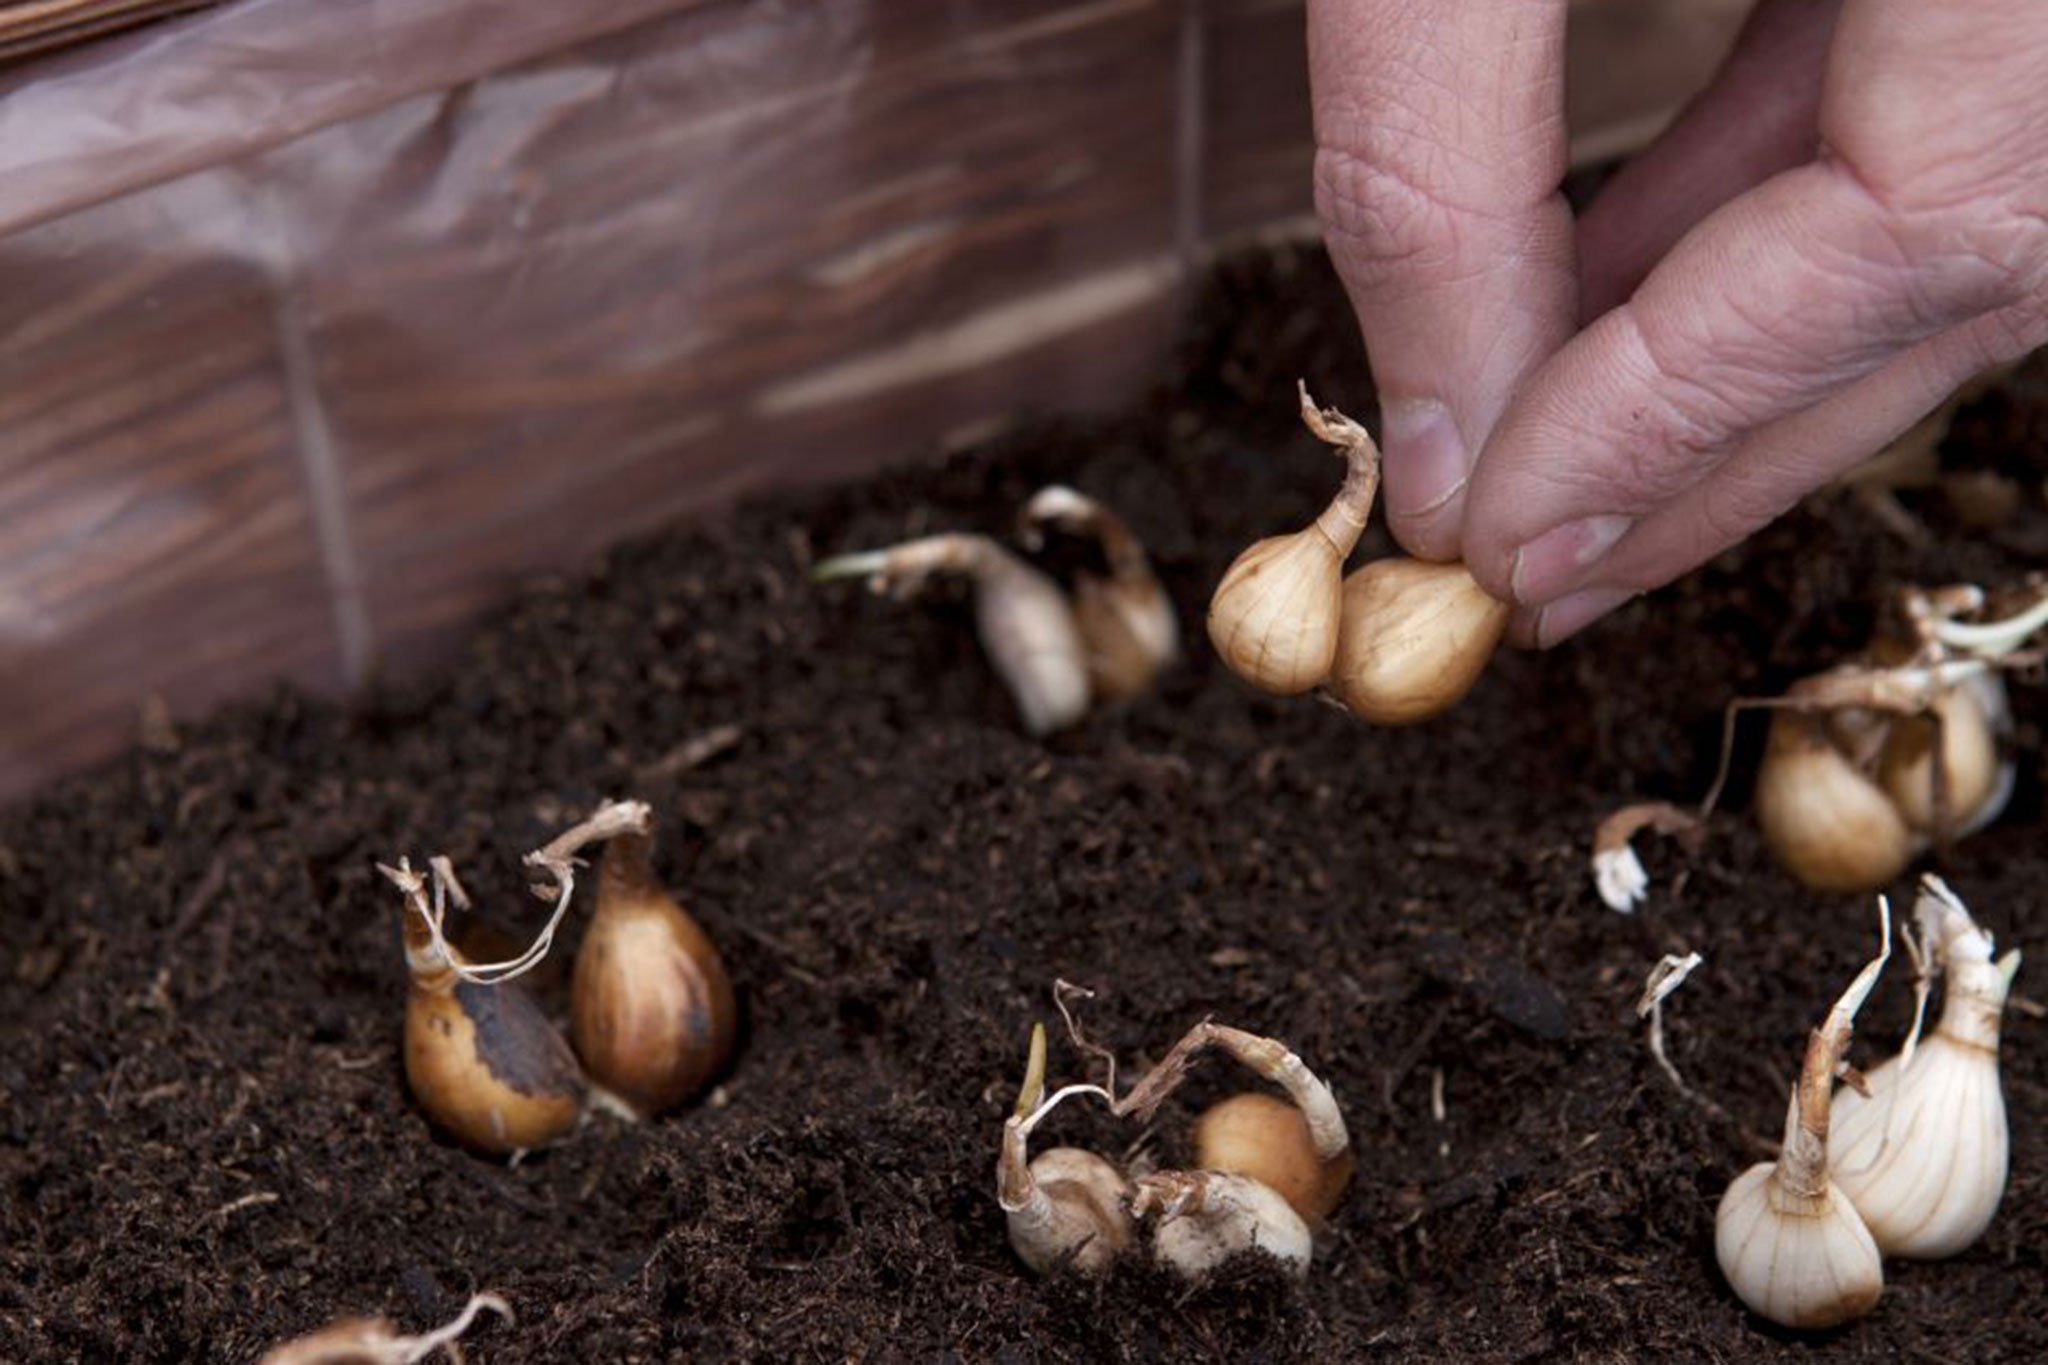 planting-narcissus-bulbs-in-the-window-box-3